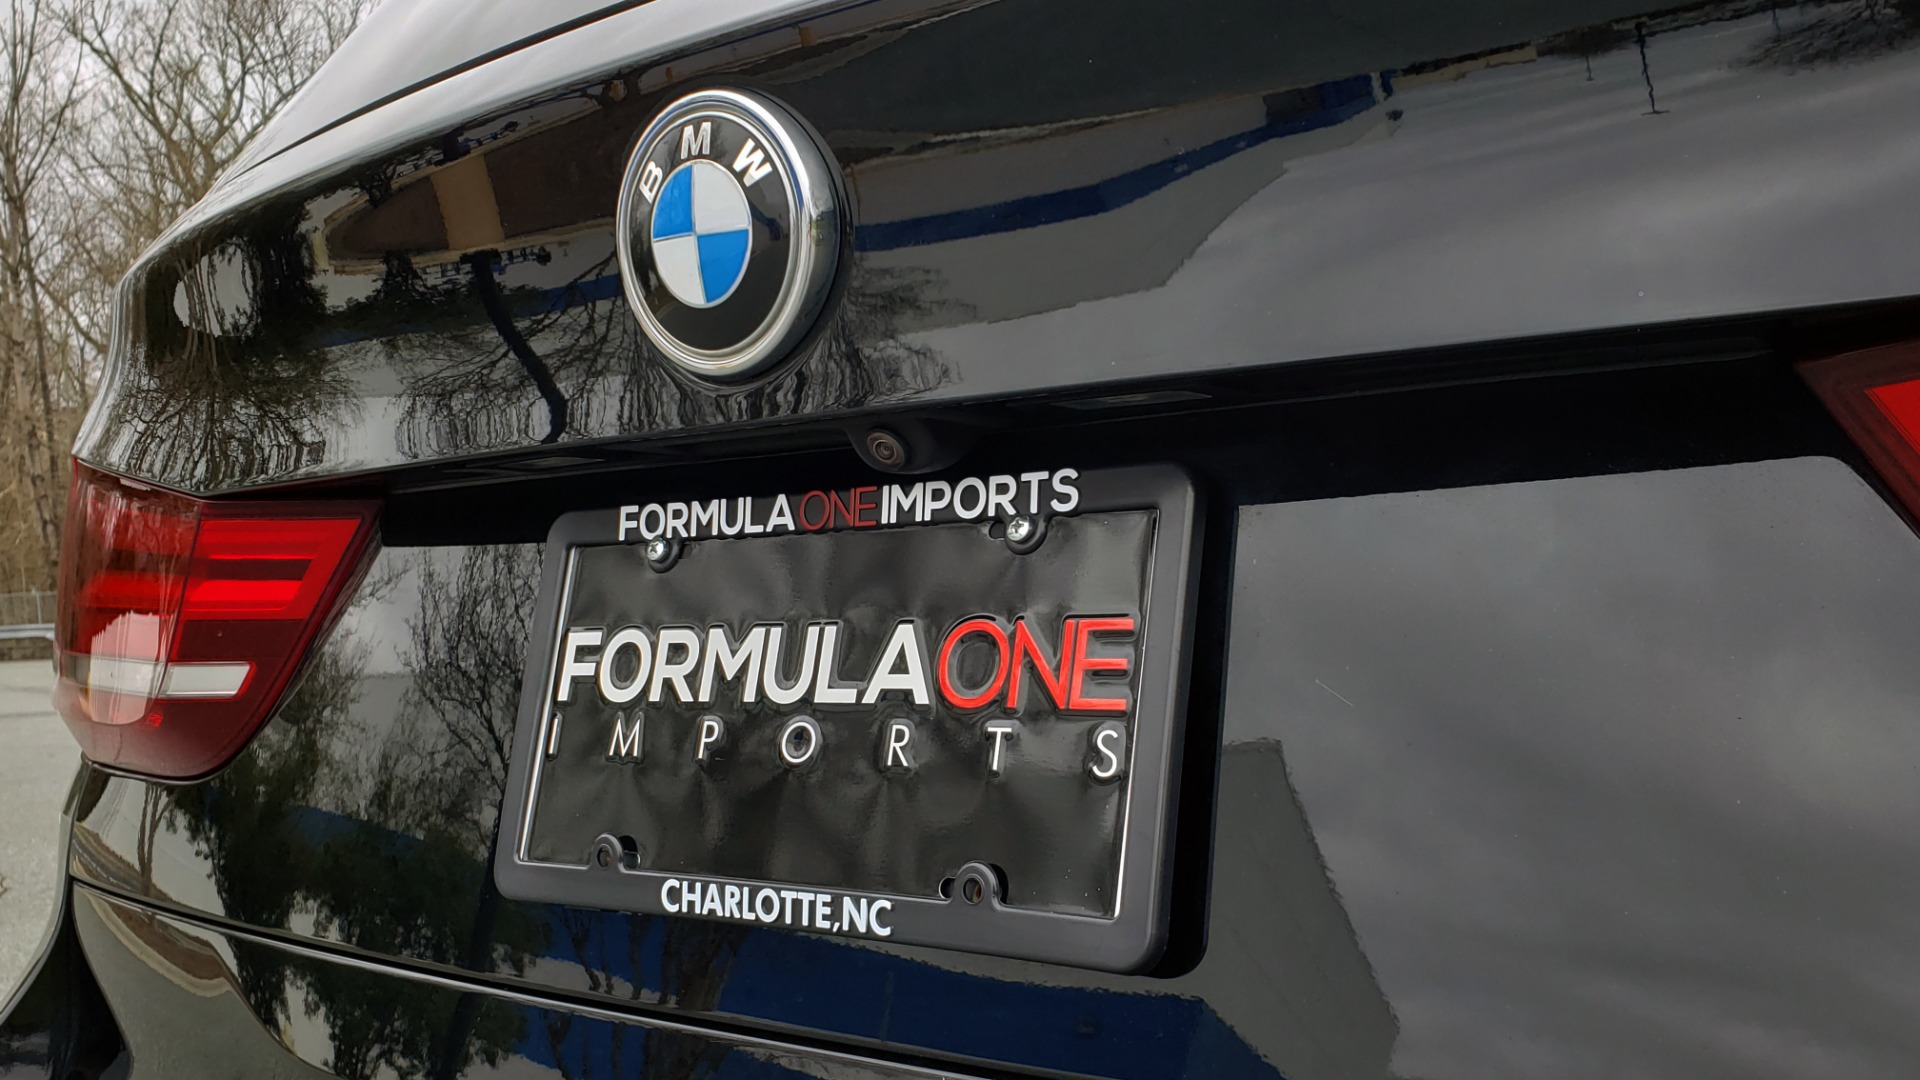 Used 2017 BMW X5 XDRIVE35I / PREM LUX PKG / DRVR ASST / CLD WTHR / APPLE CAR PLAY for sale Sold at Formula Imports in Charlotte NC 28227 32